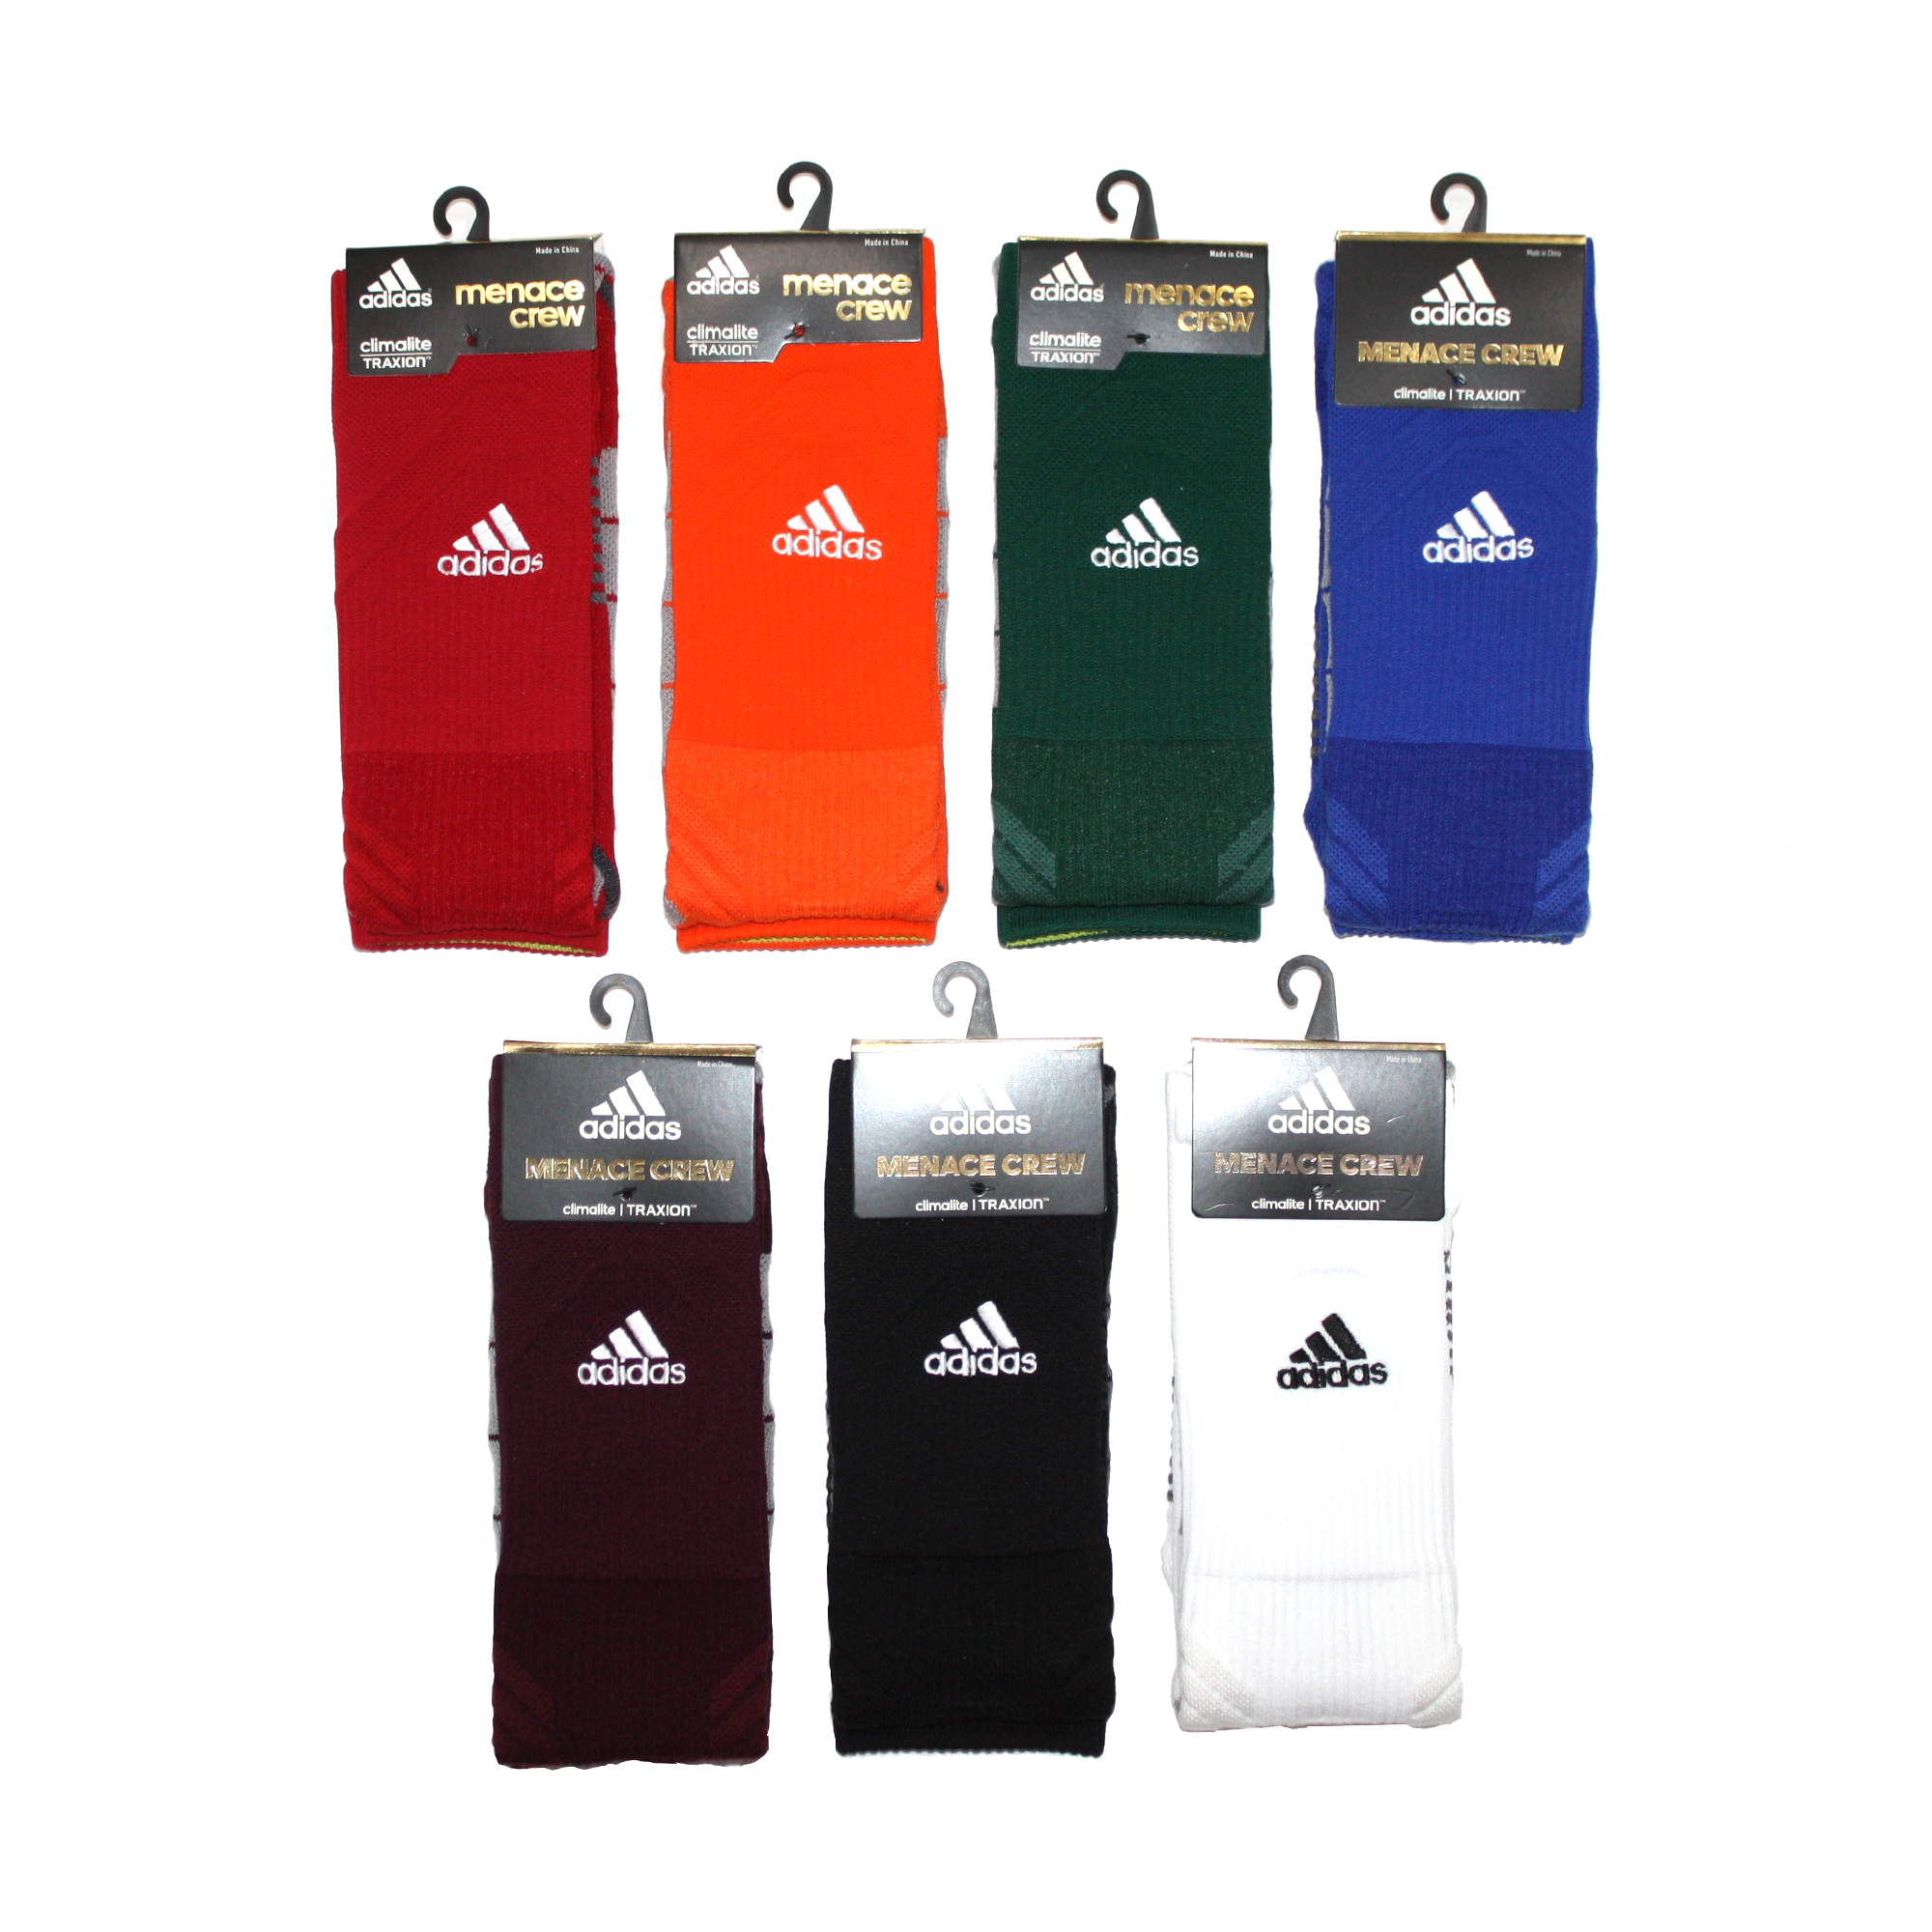 "ADIDAS ""MENACE CREW"" Socks 7 Colors"